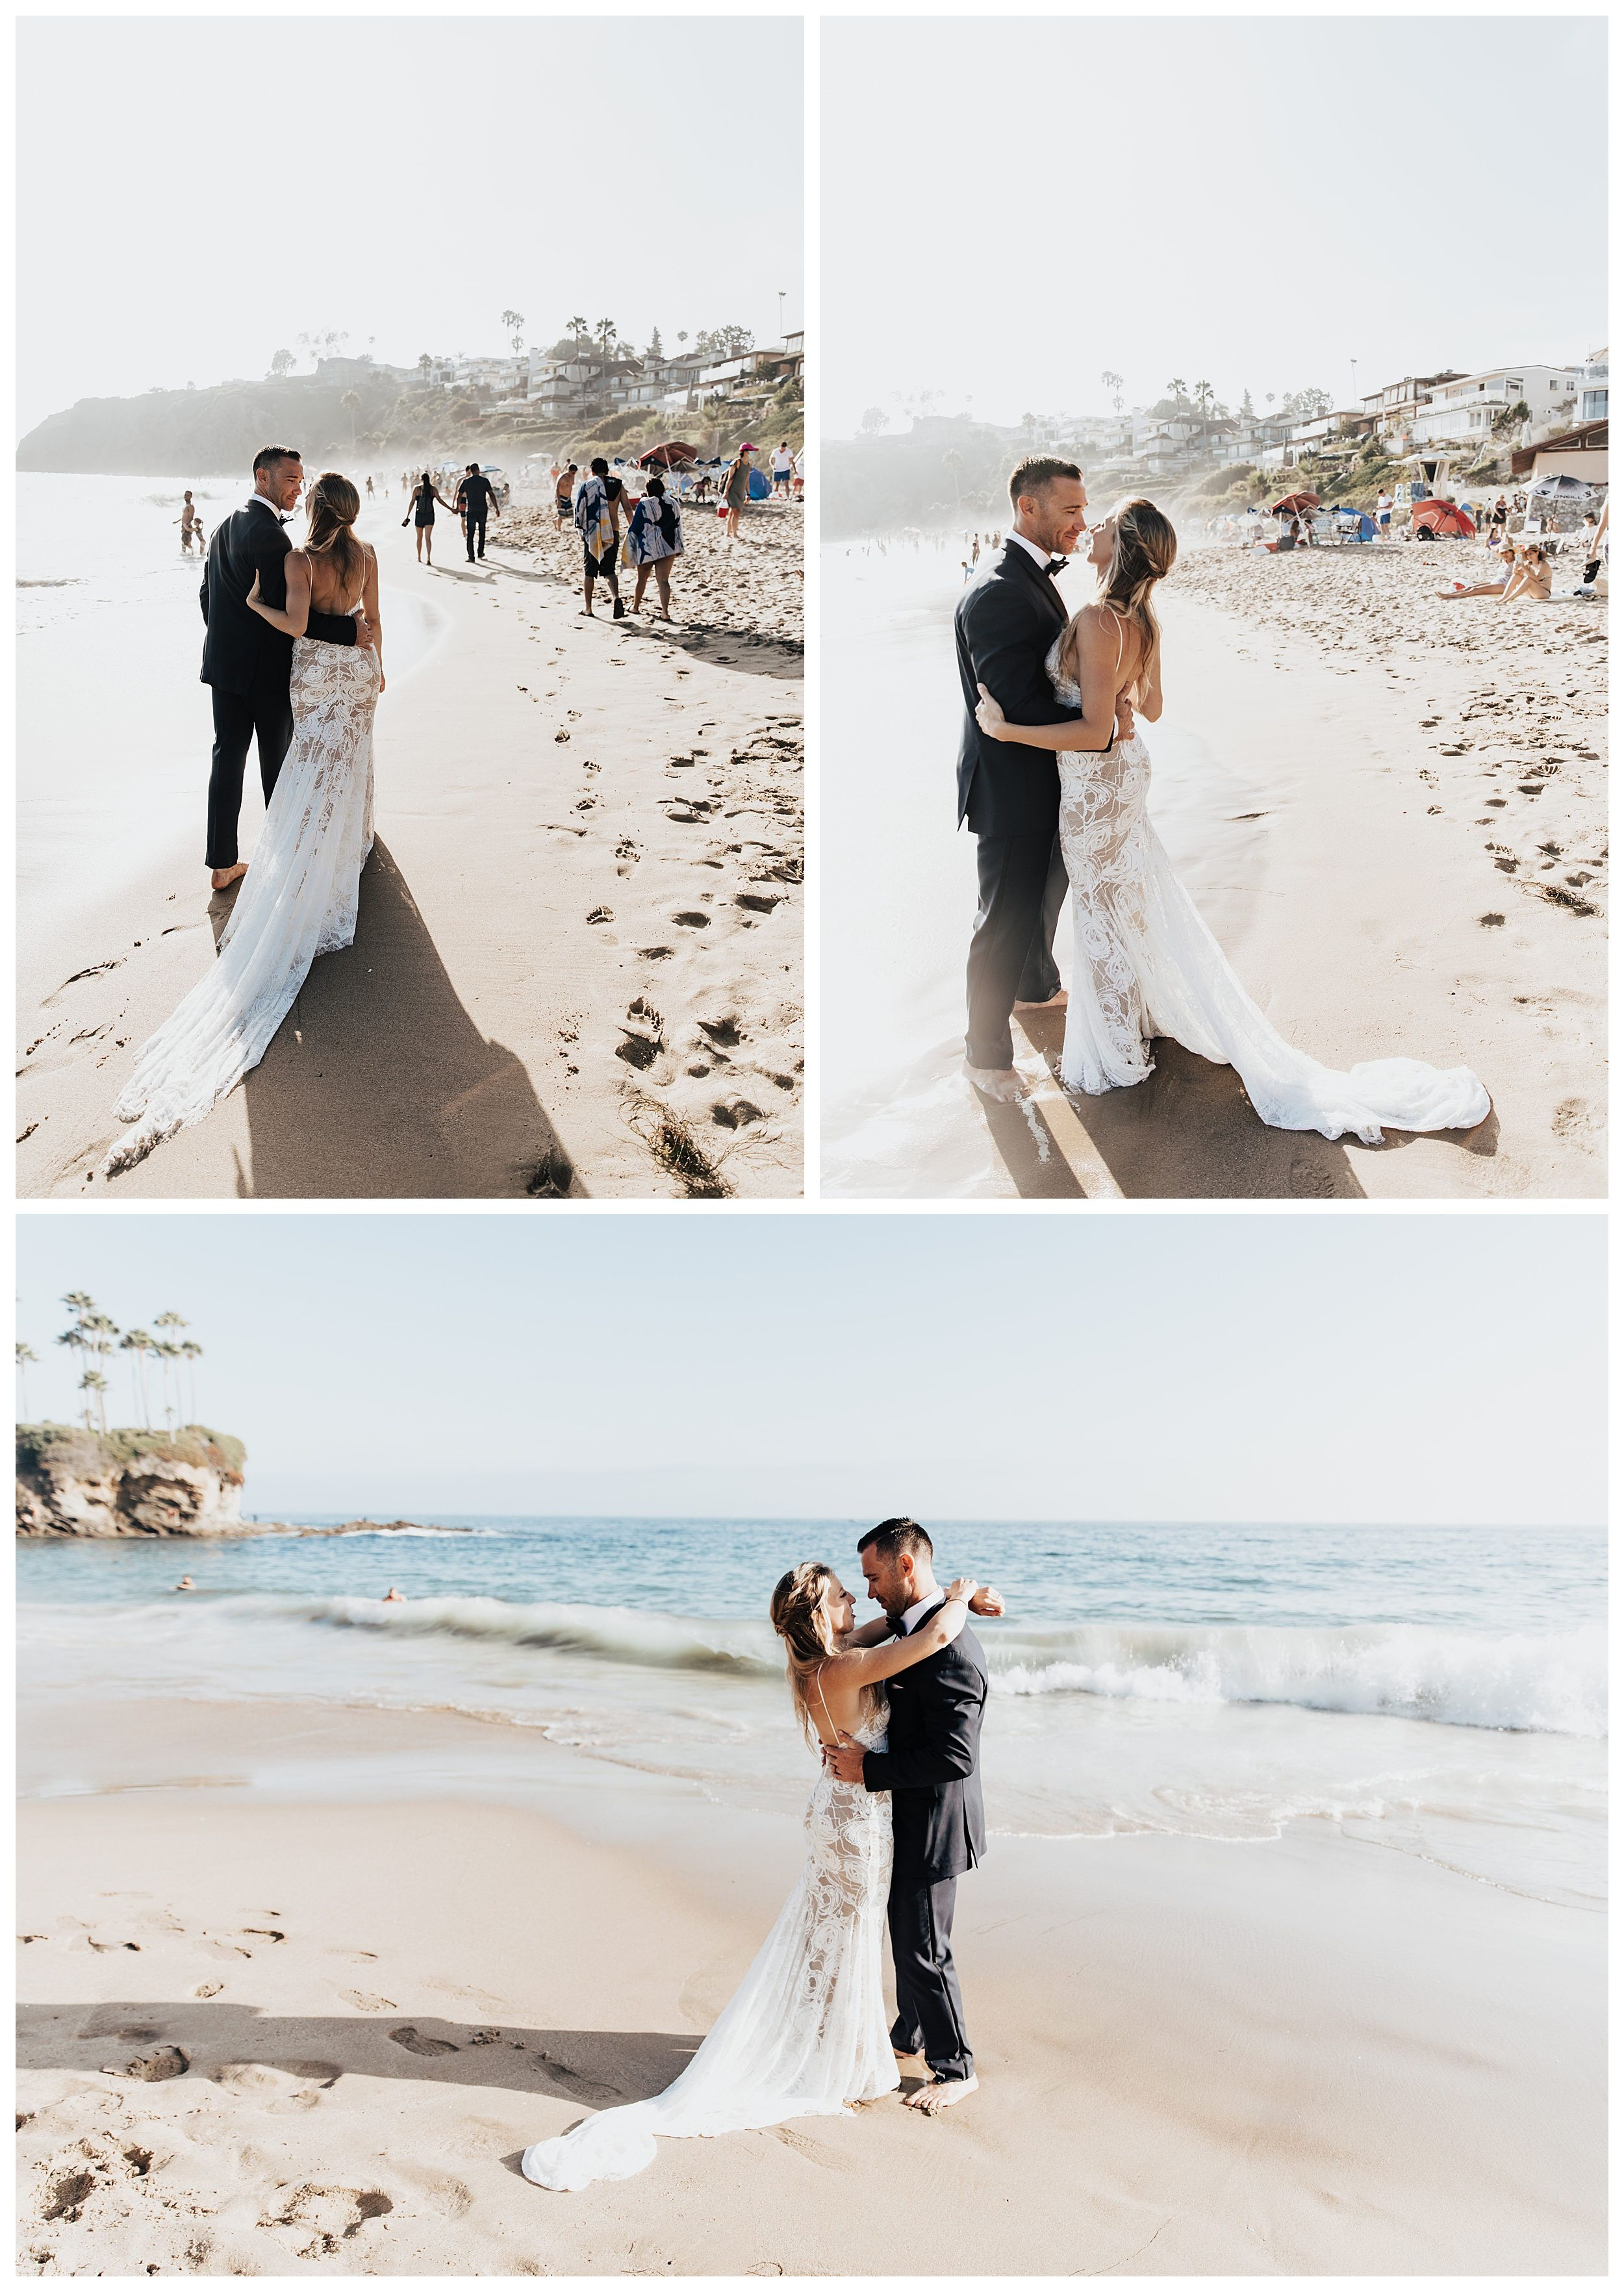 wedding photos on the beach, elopement photos on the beach